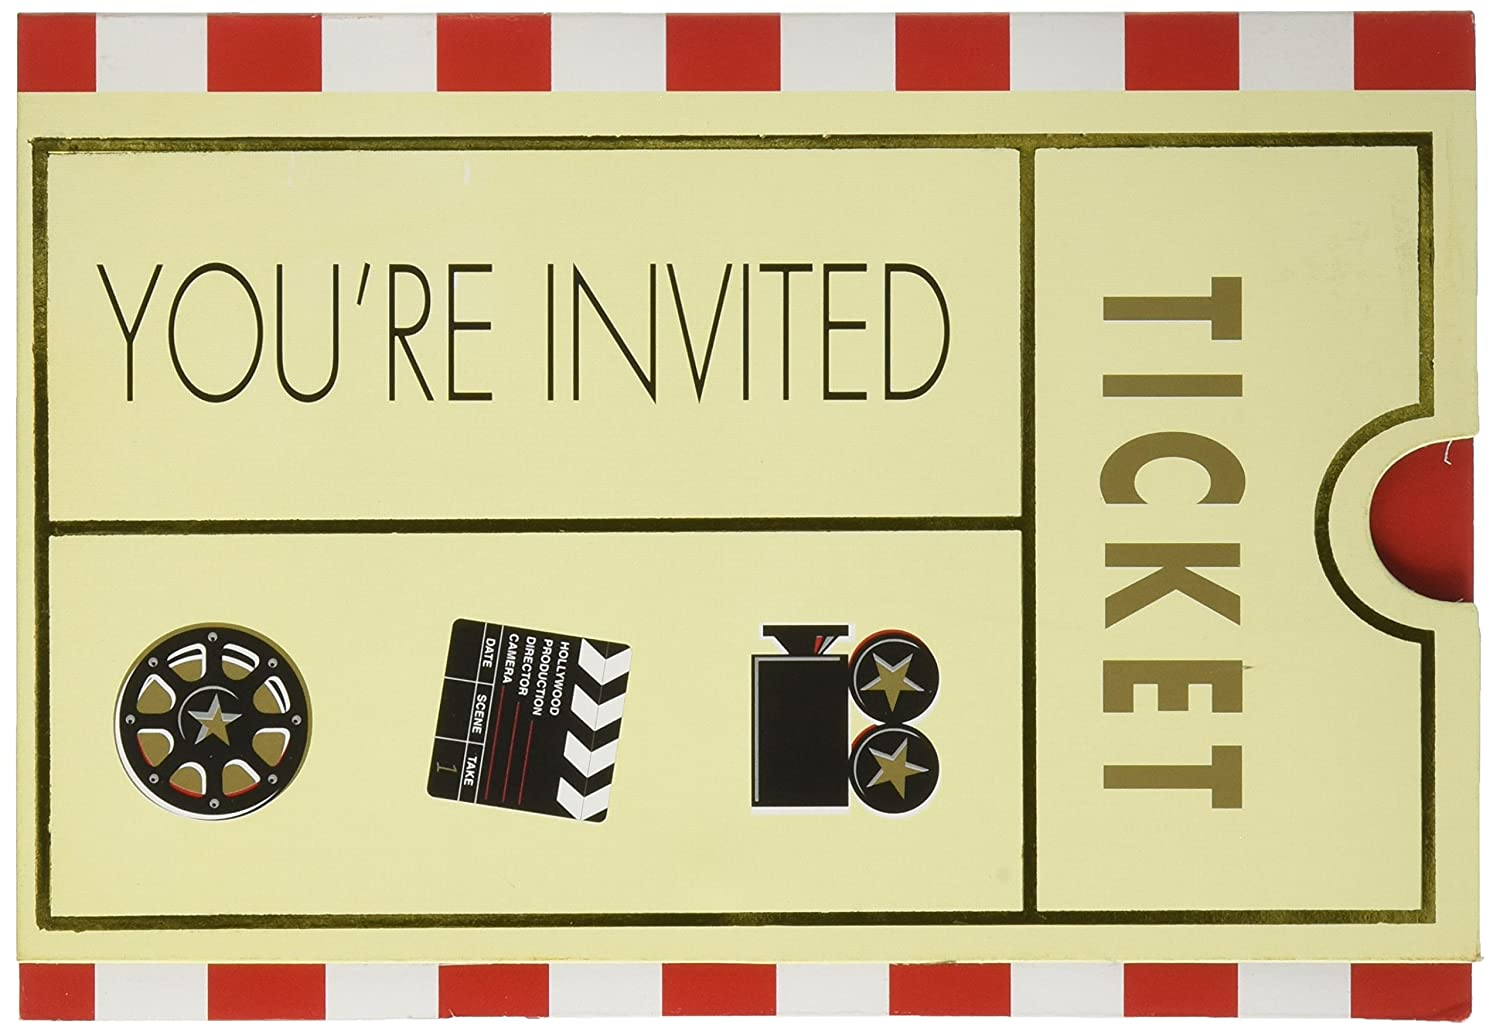 Amscan 8 Movie Youre Invited Ticket Invitations Pack of 8 Amscan International 499122